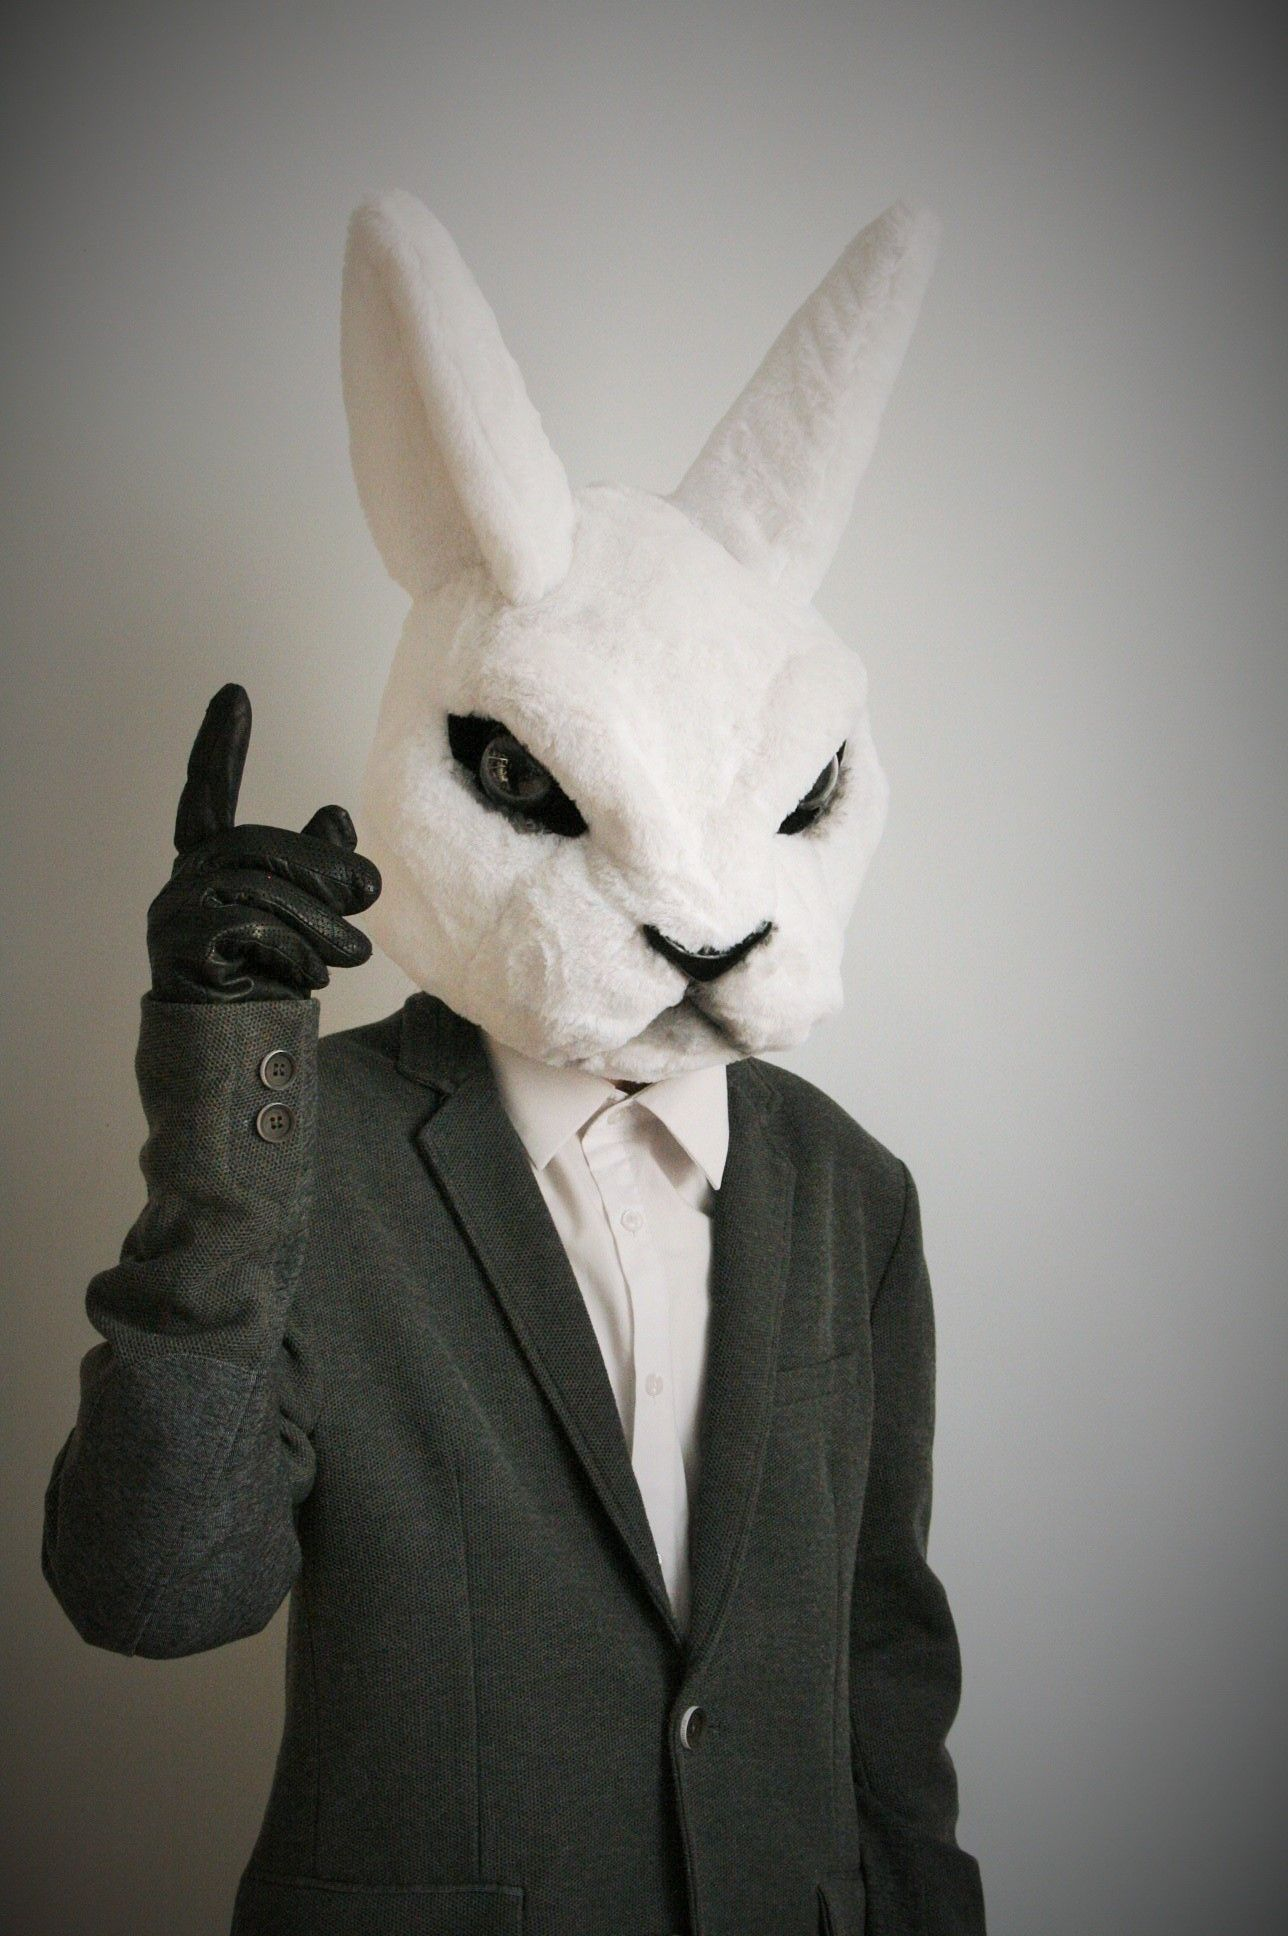 Rabbit head from Misfits show, by Oneandonlycostumes